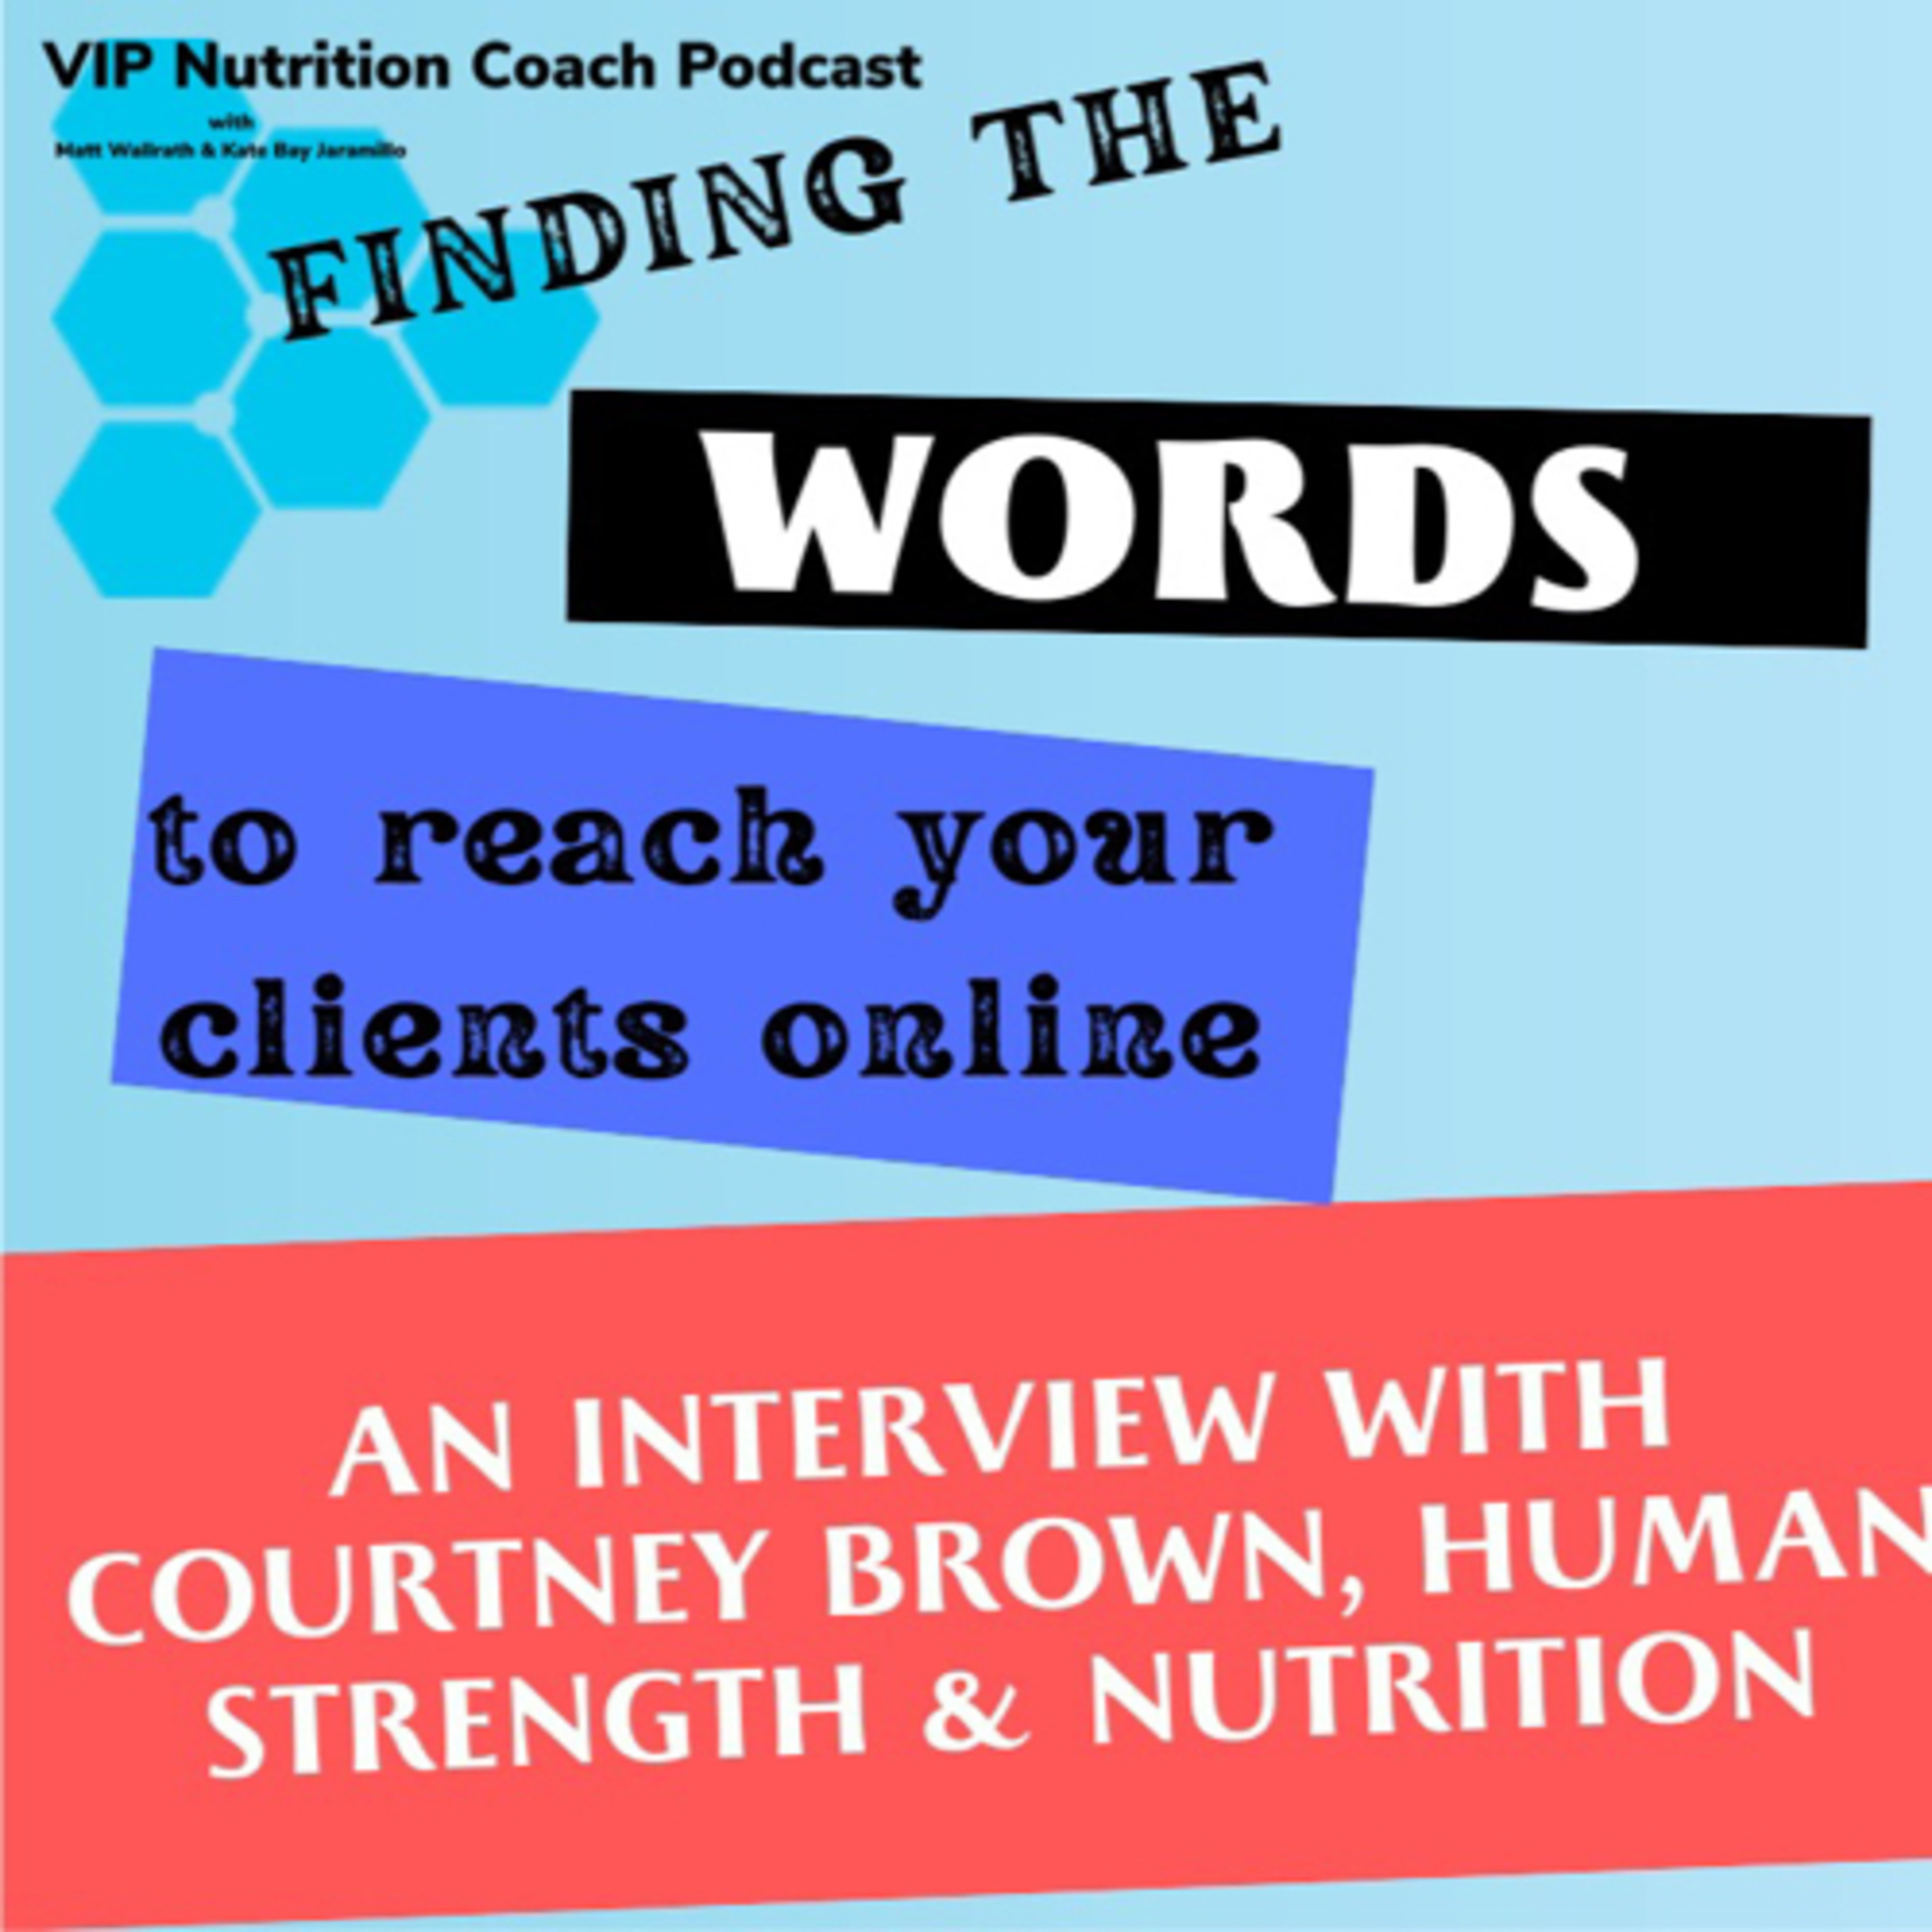 Find the Words to Reach Your Clients Online - an Interview with Courtney Brown